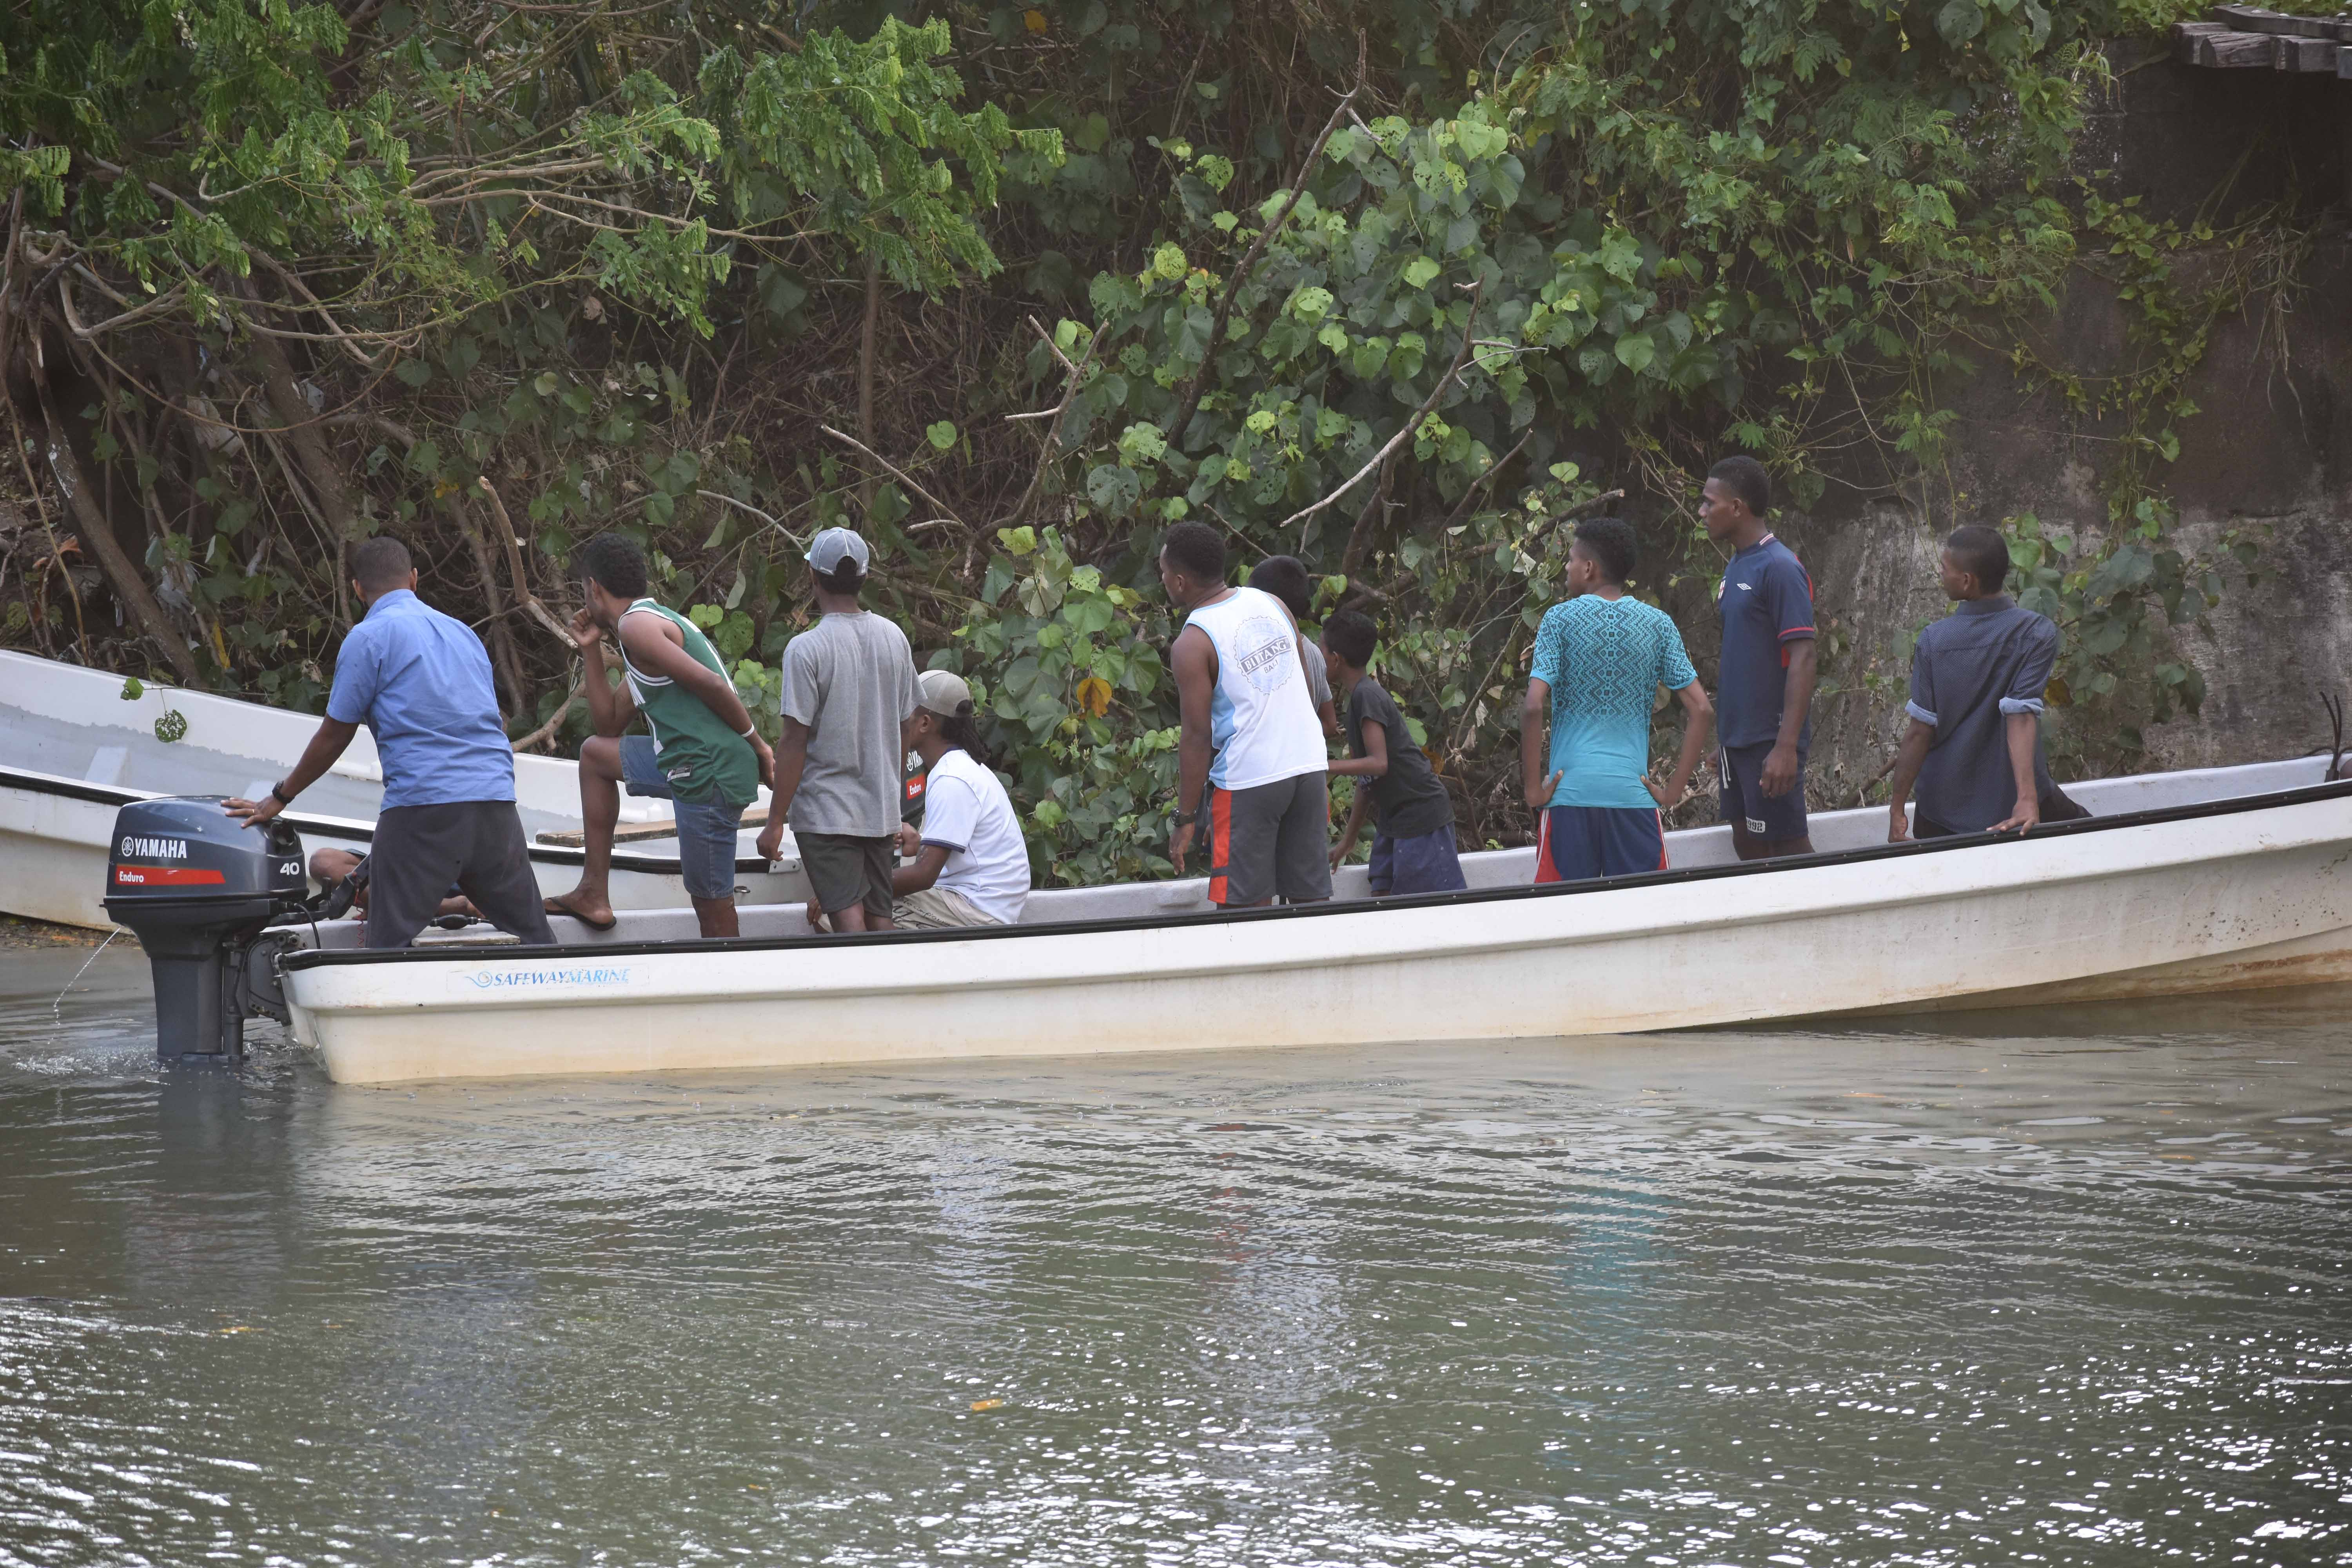 The search party looking for Devesi Devulu Vosadrau at the Qawa River in Labasa on April 15, 2018. Photo: Wati Talebula.